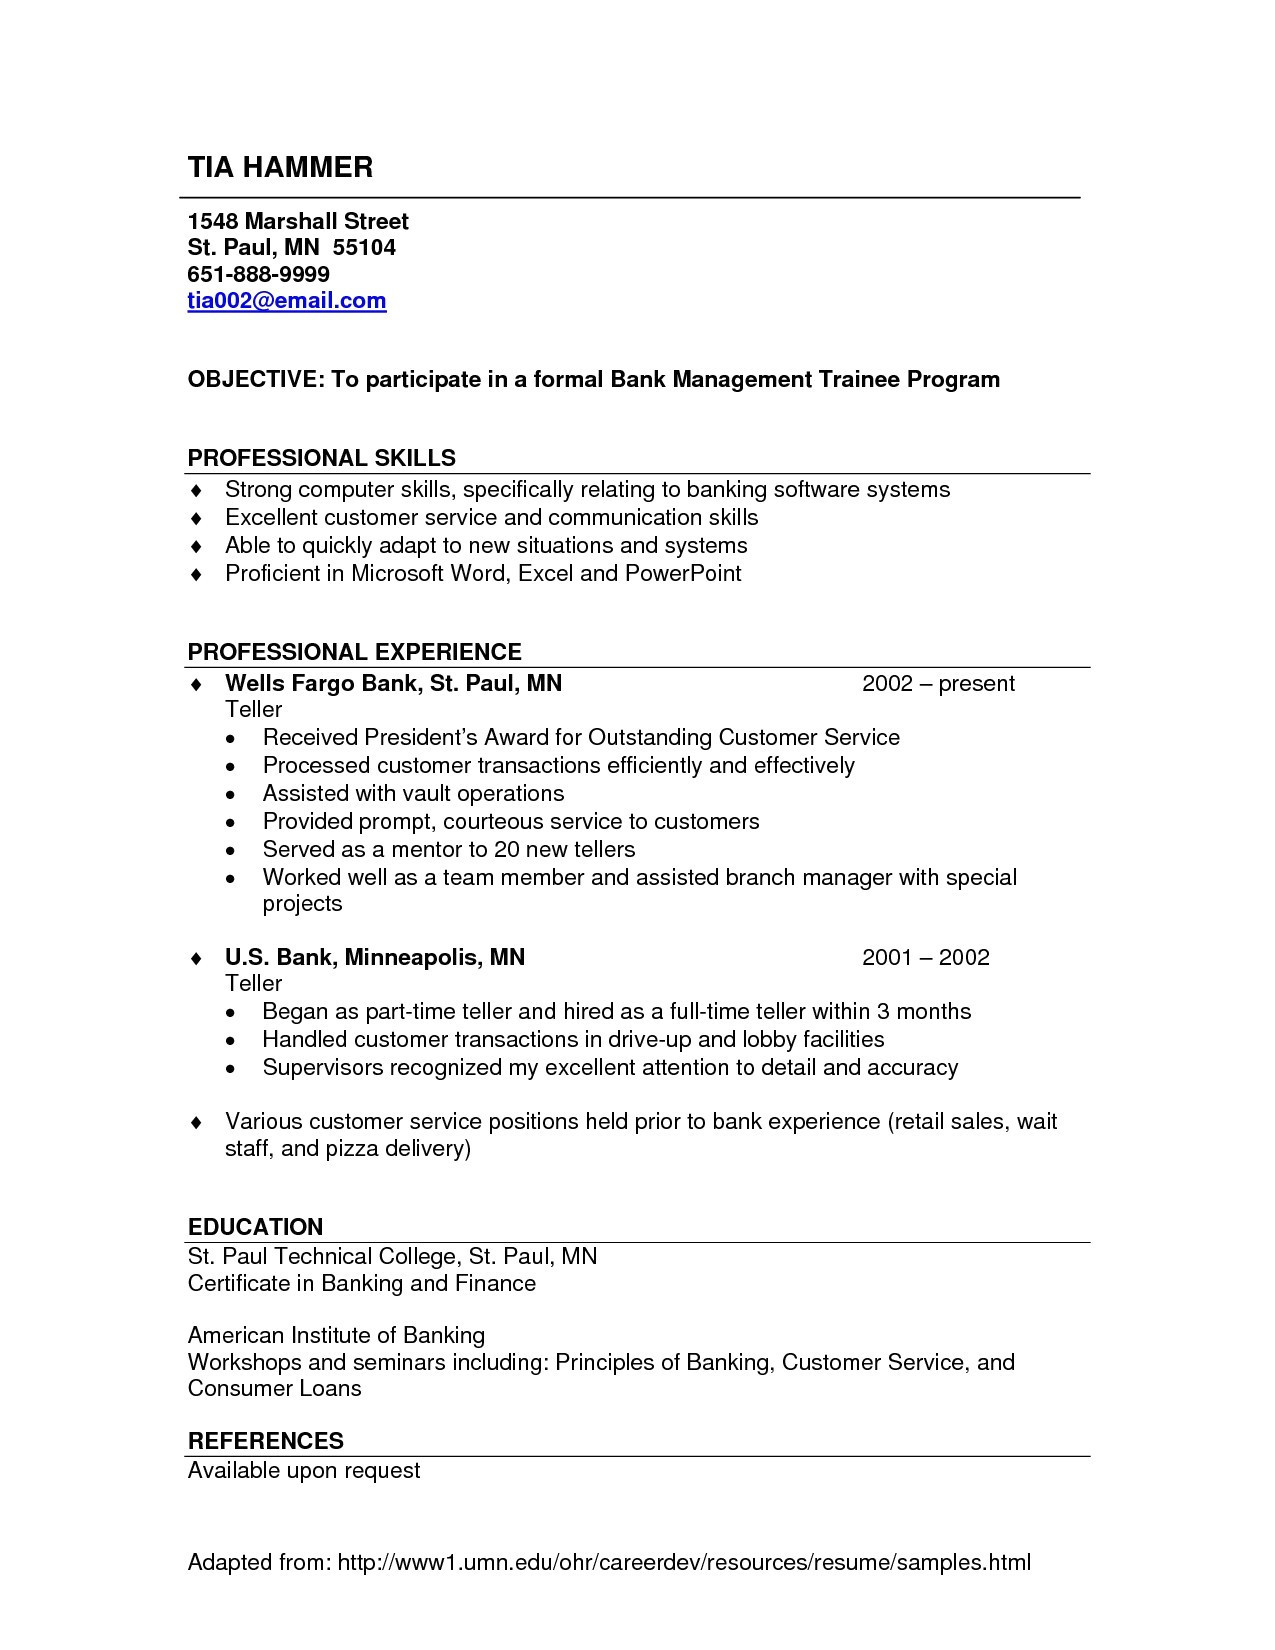 Supervisor Resume Template - Apa Resume Template New Examples A Resume Fresh Resume Examples 0d